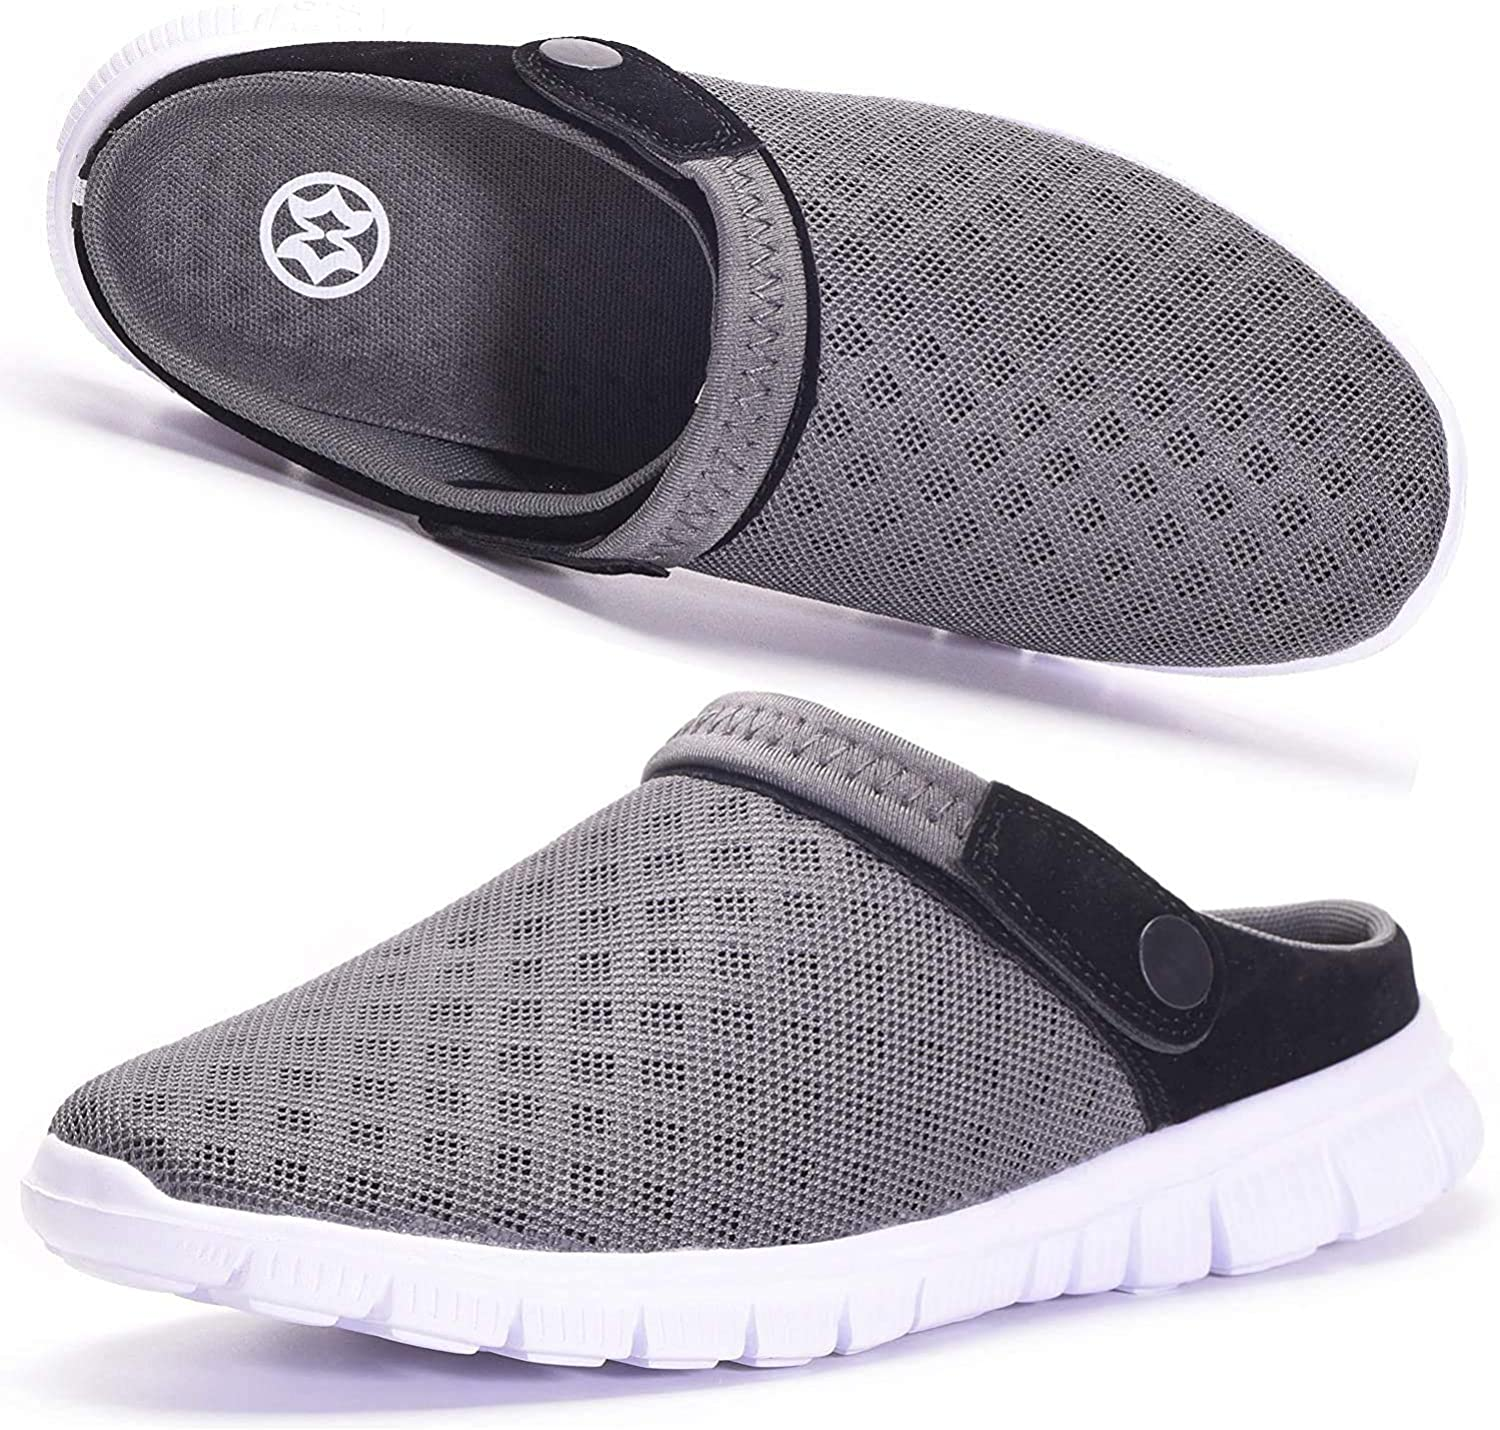 Hsyooes Mens Womens Mules & Clogs Garden Shoes Summer Breathable Mesh Slippers Non-Slip Outdoor Beach Sandals Unisex